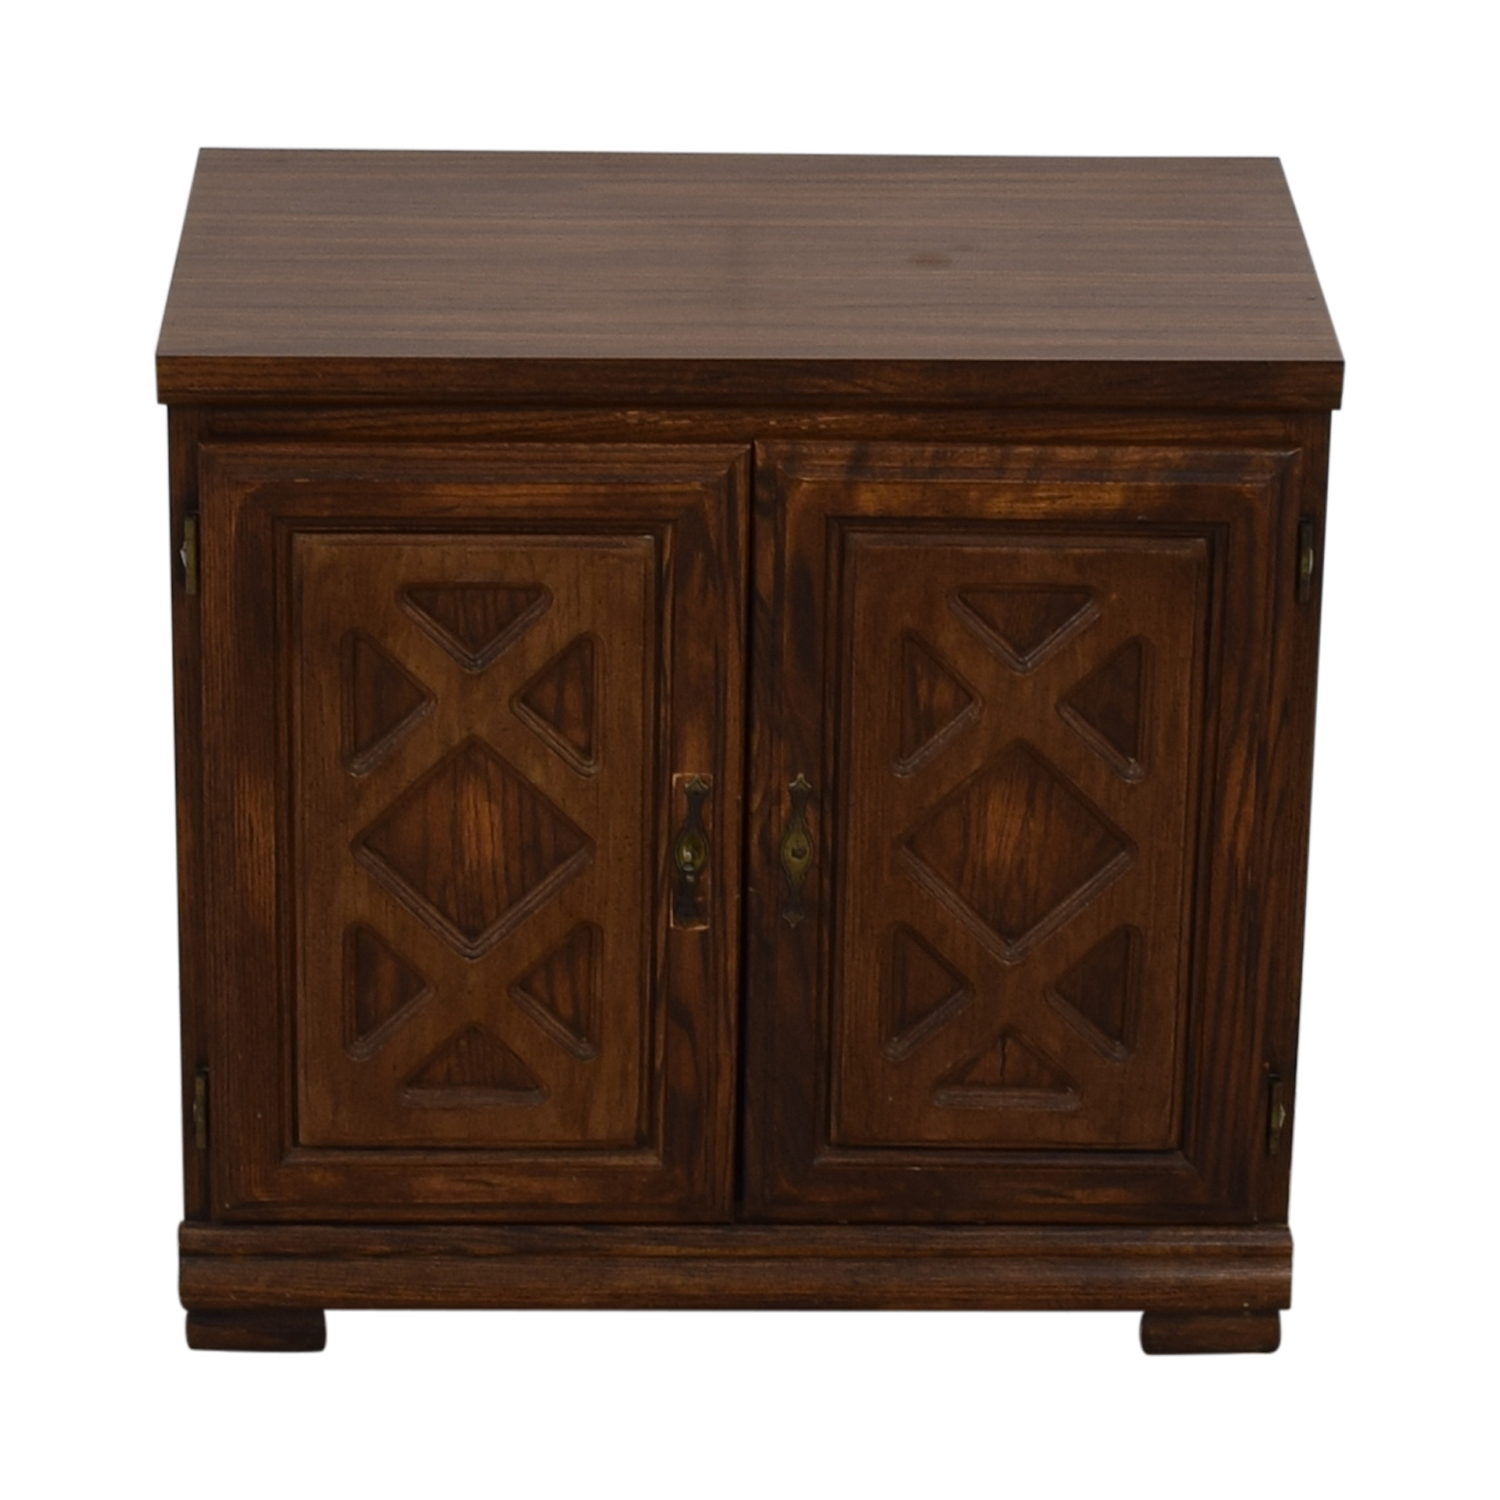 buy Carved Wood Chest with Shelves